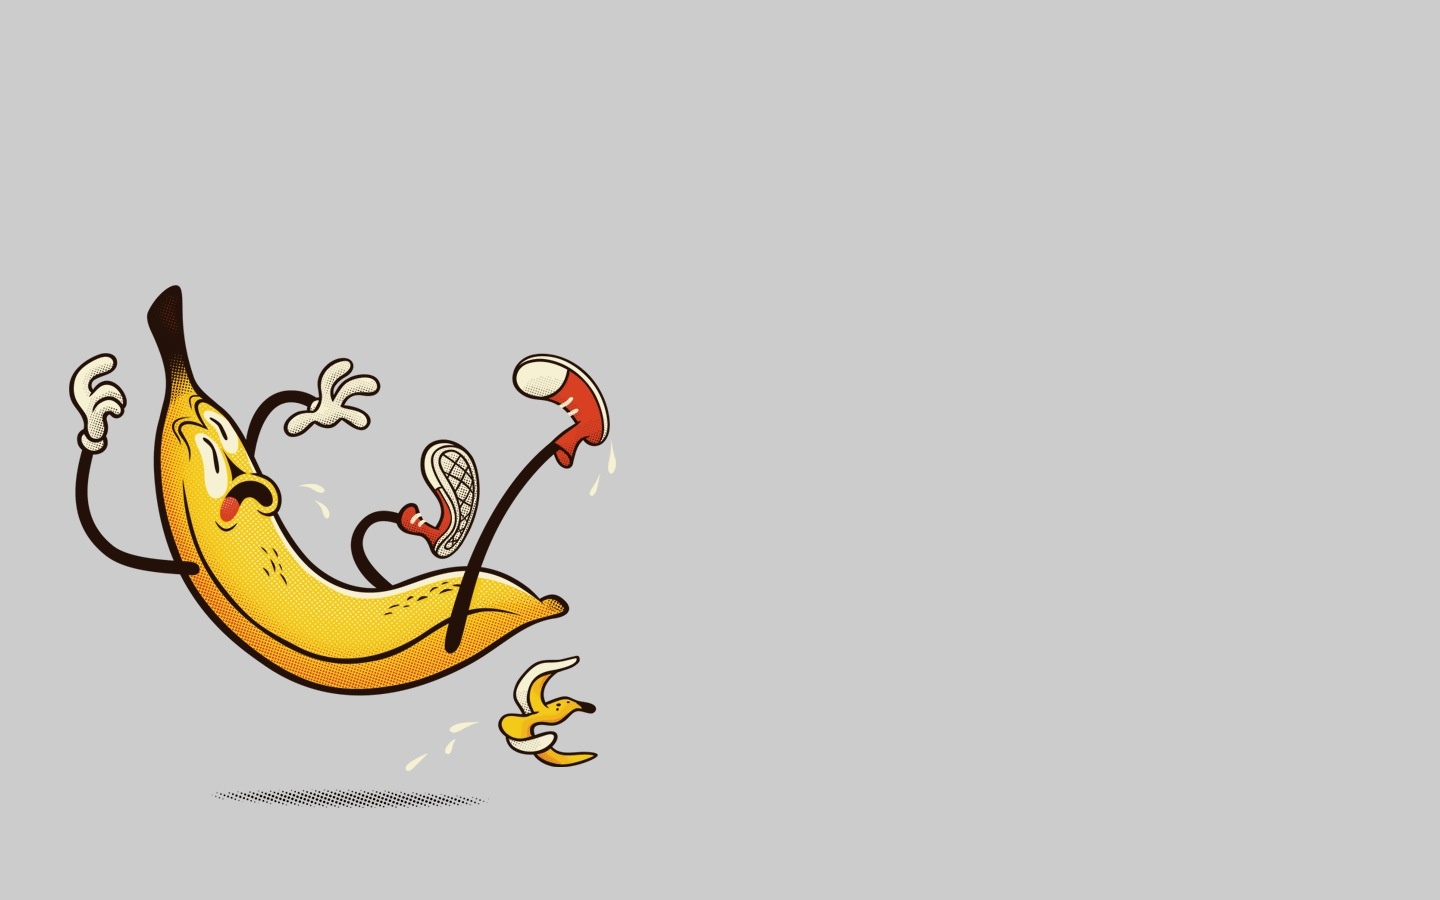 Banana PPT Background For Powerpoint Program